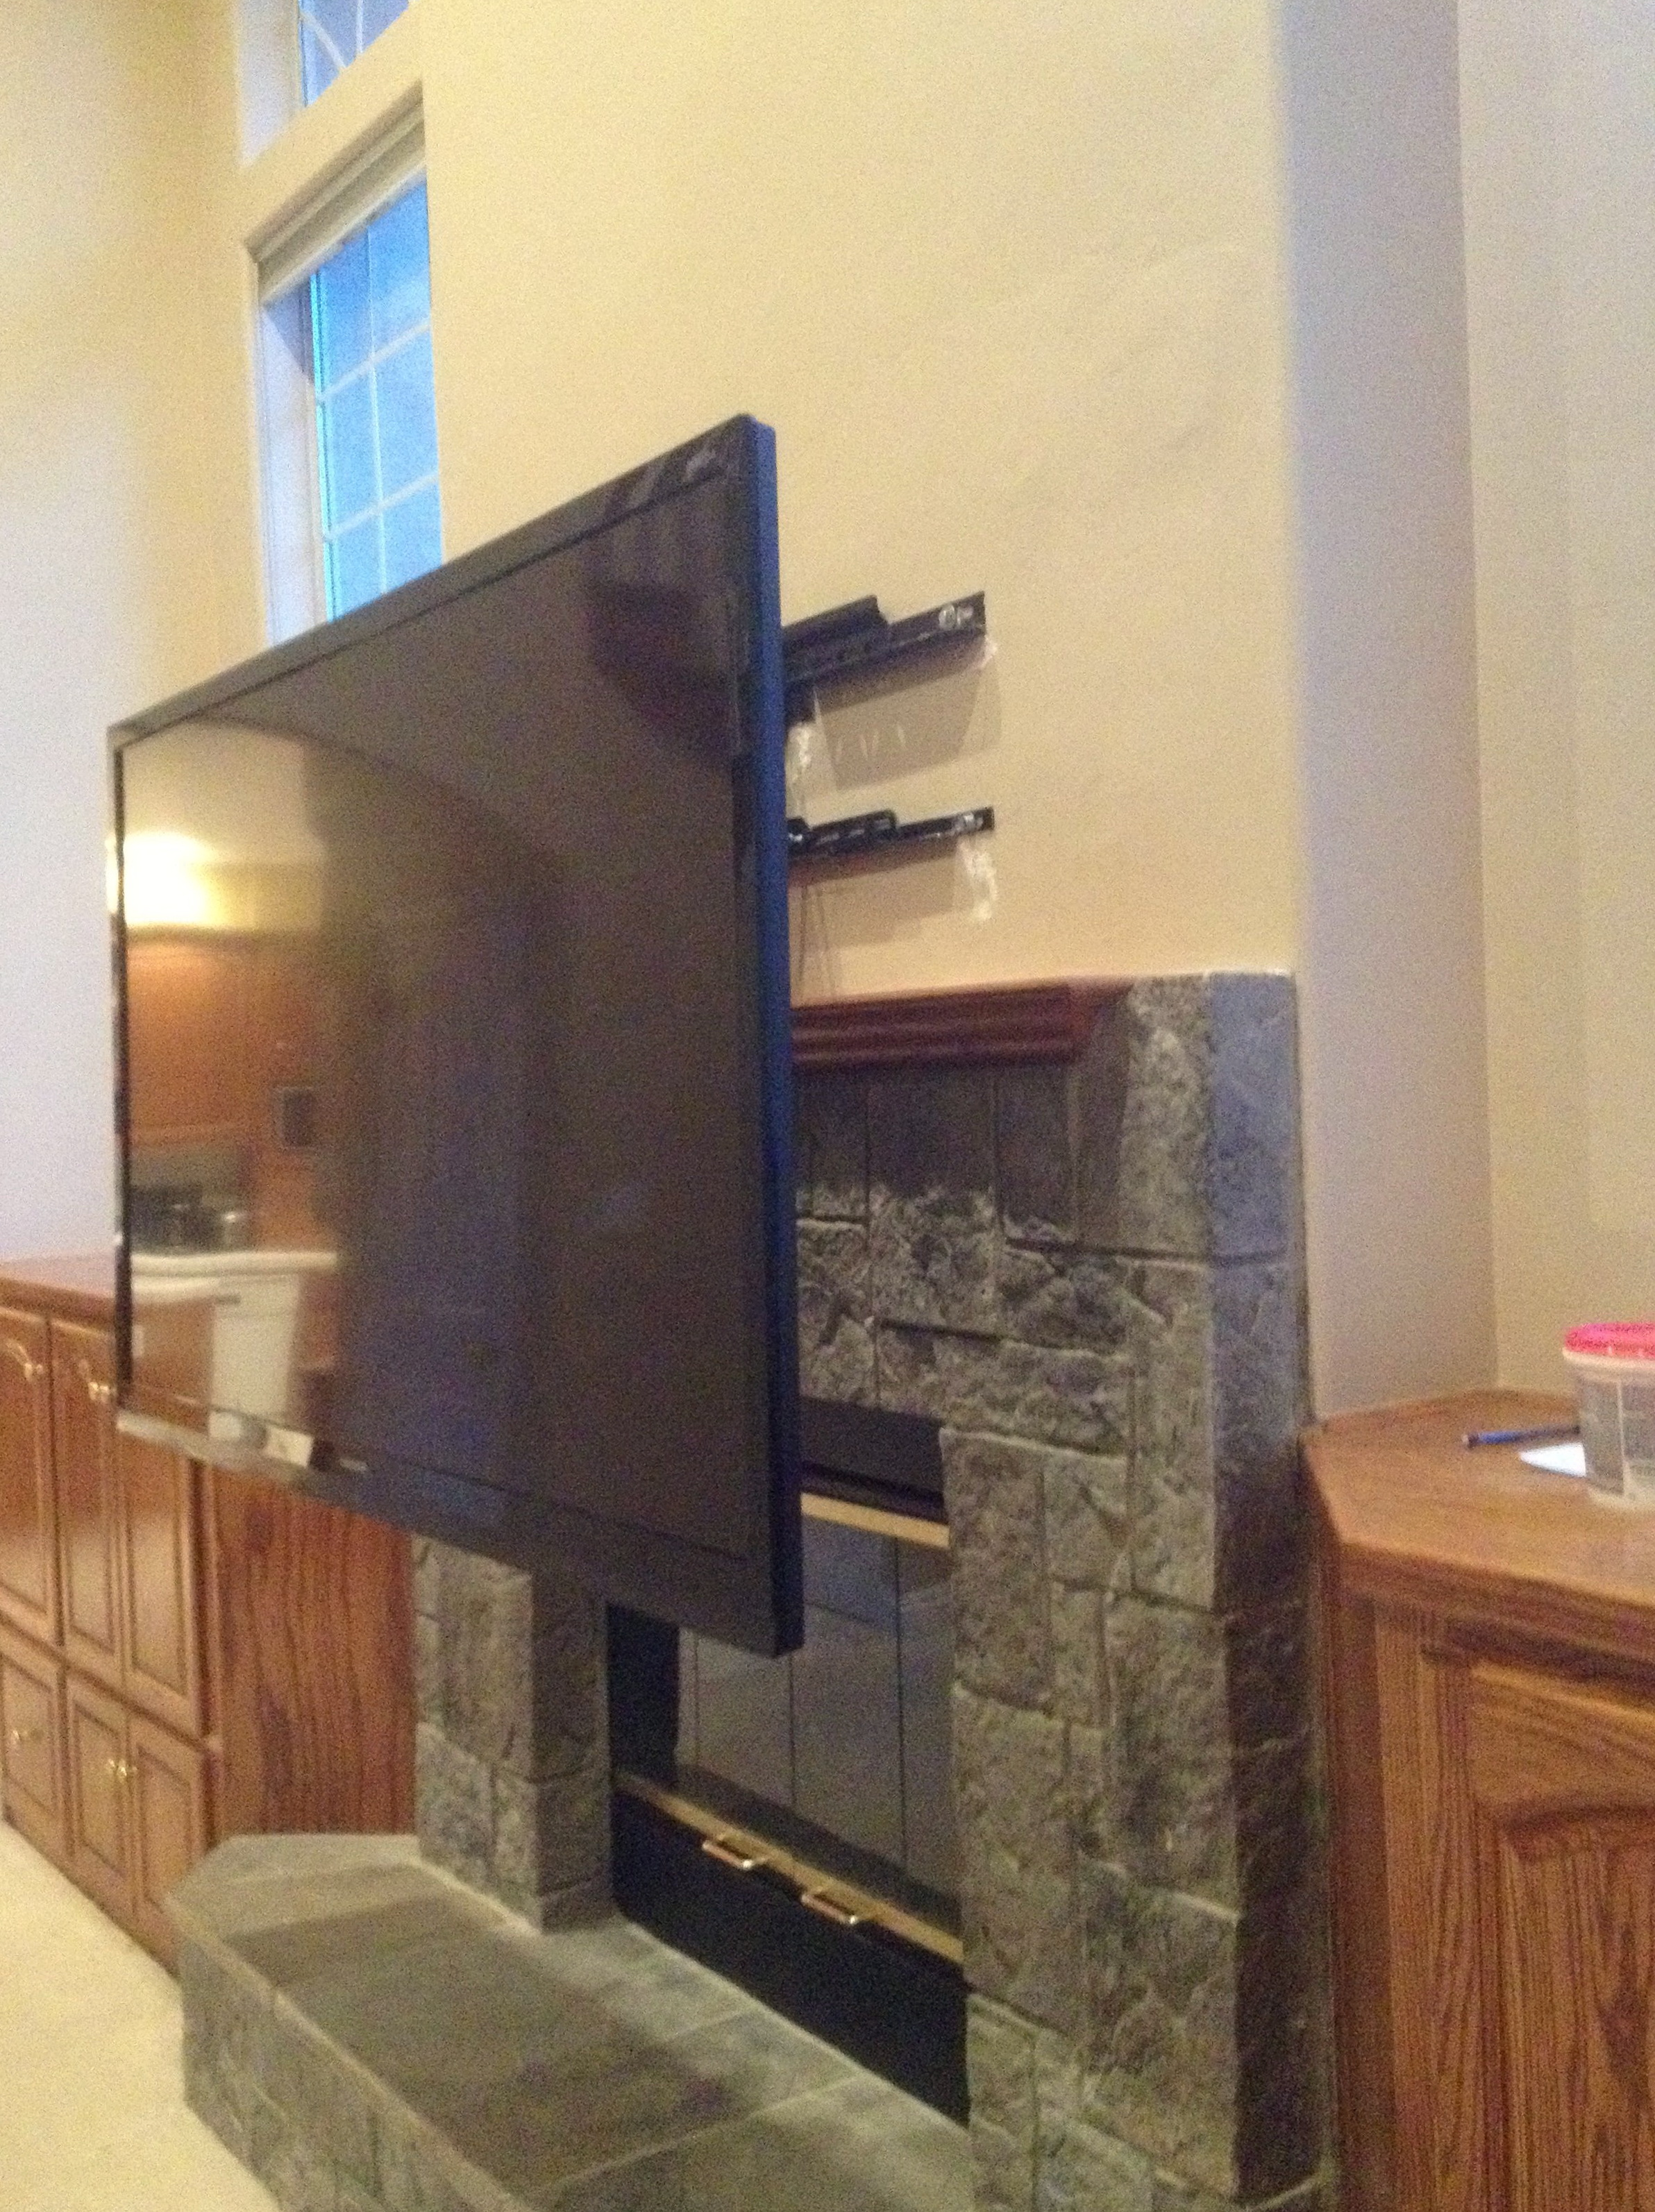 Mounting A Tv Above A Fireplace Without Studs Home